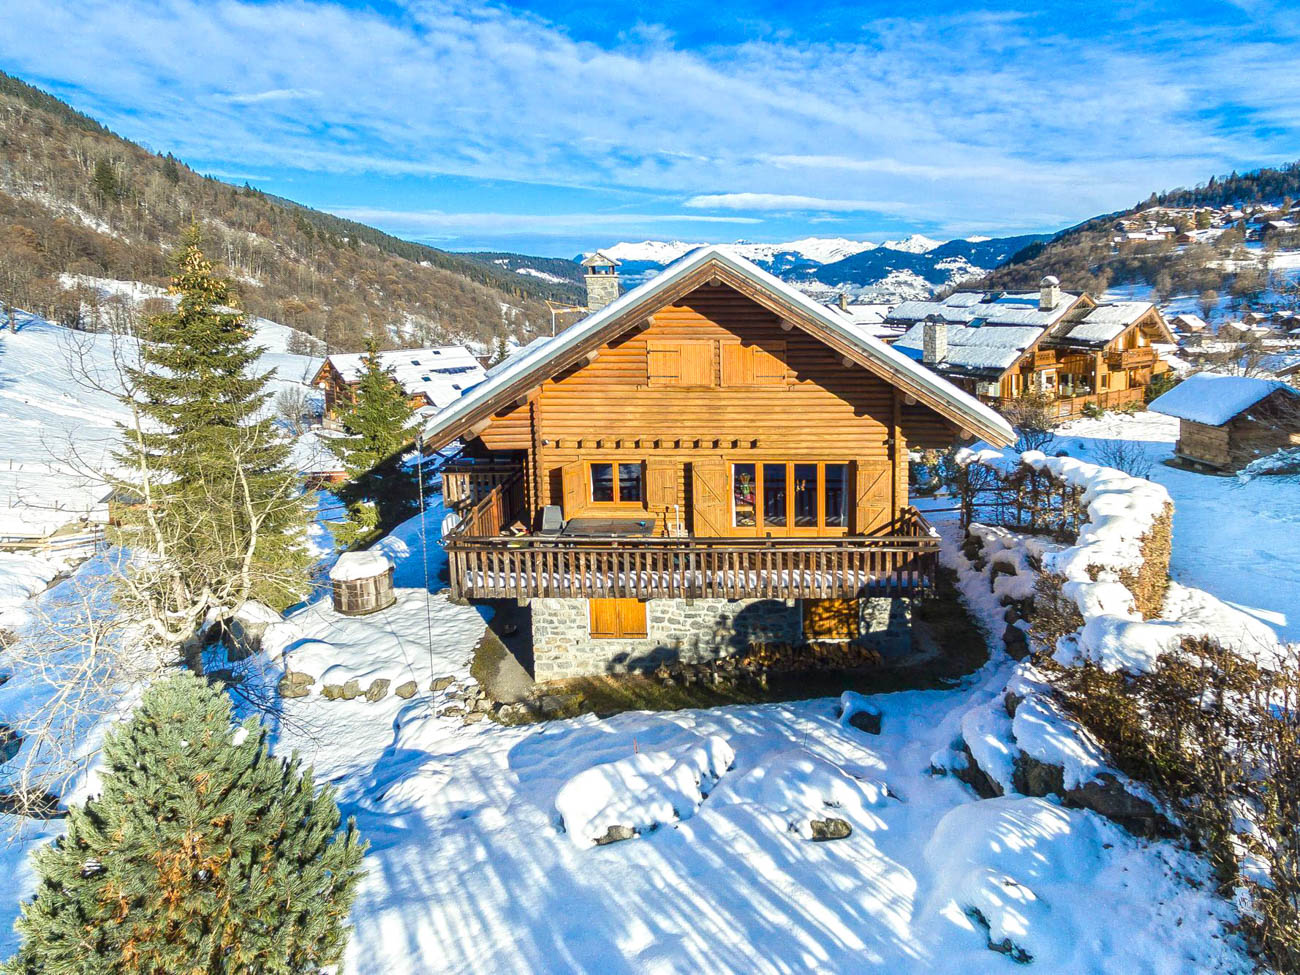 rent chalet by the week Rena